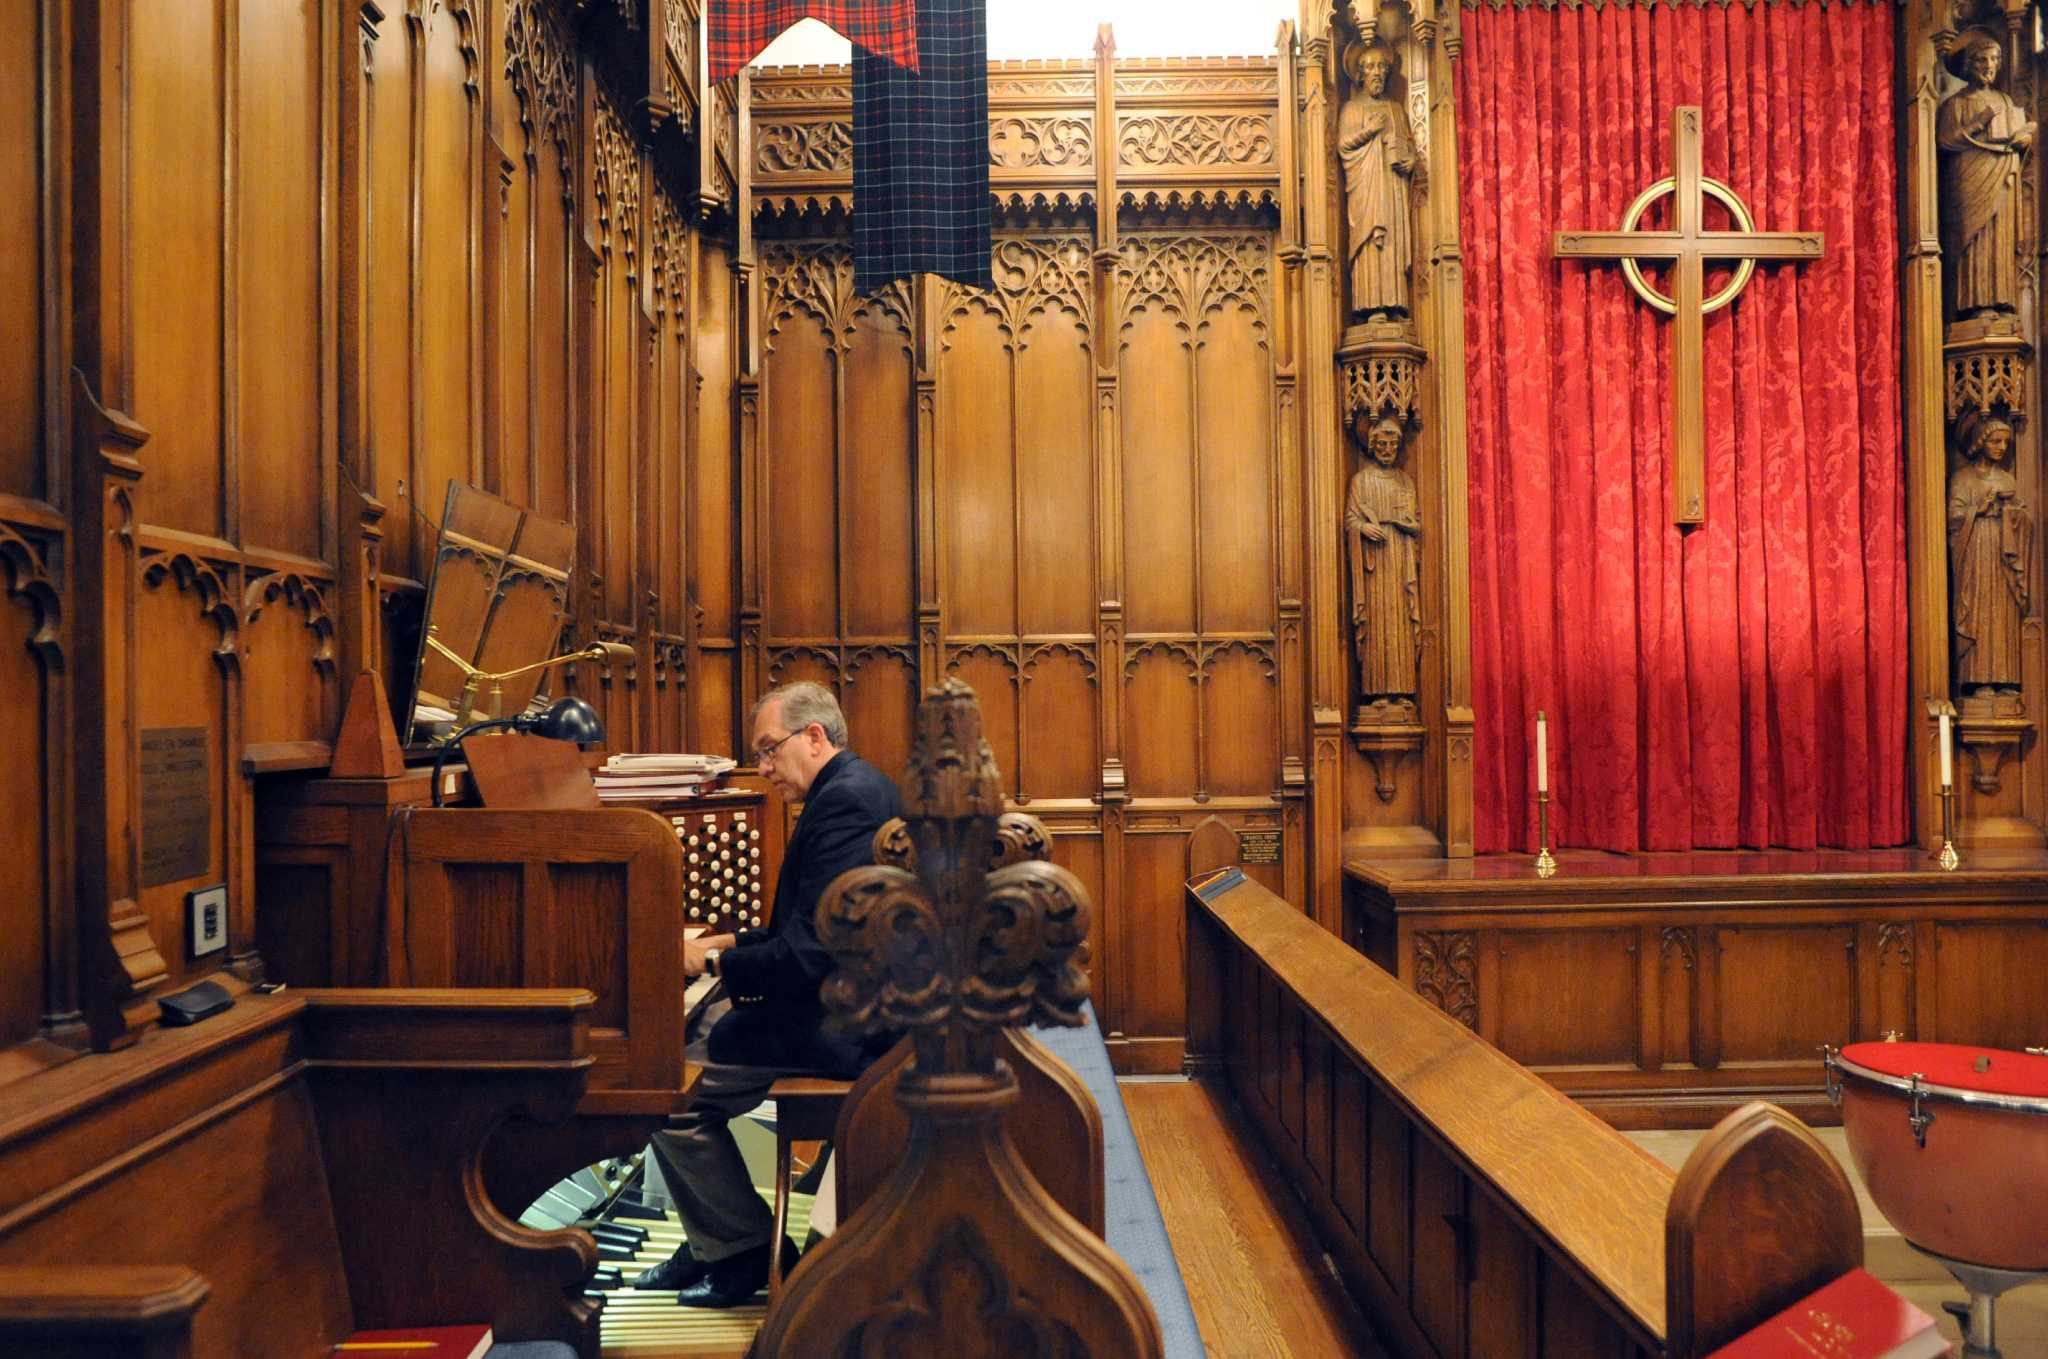 Thomas organ company pension - Retired Heart Surgeon Gives New Life To Historic Church Organ In Albany Times Union